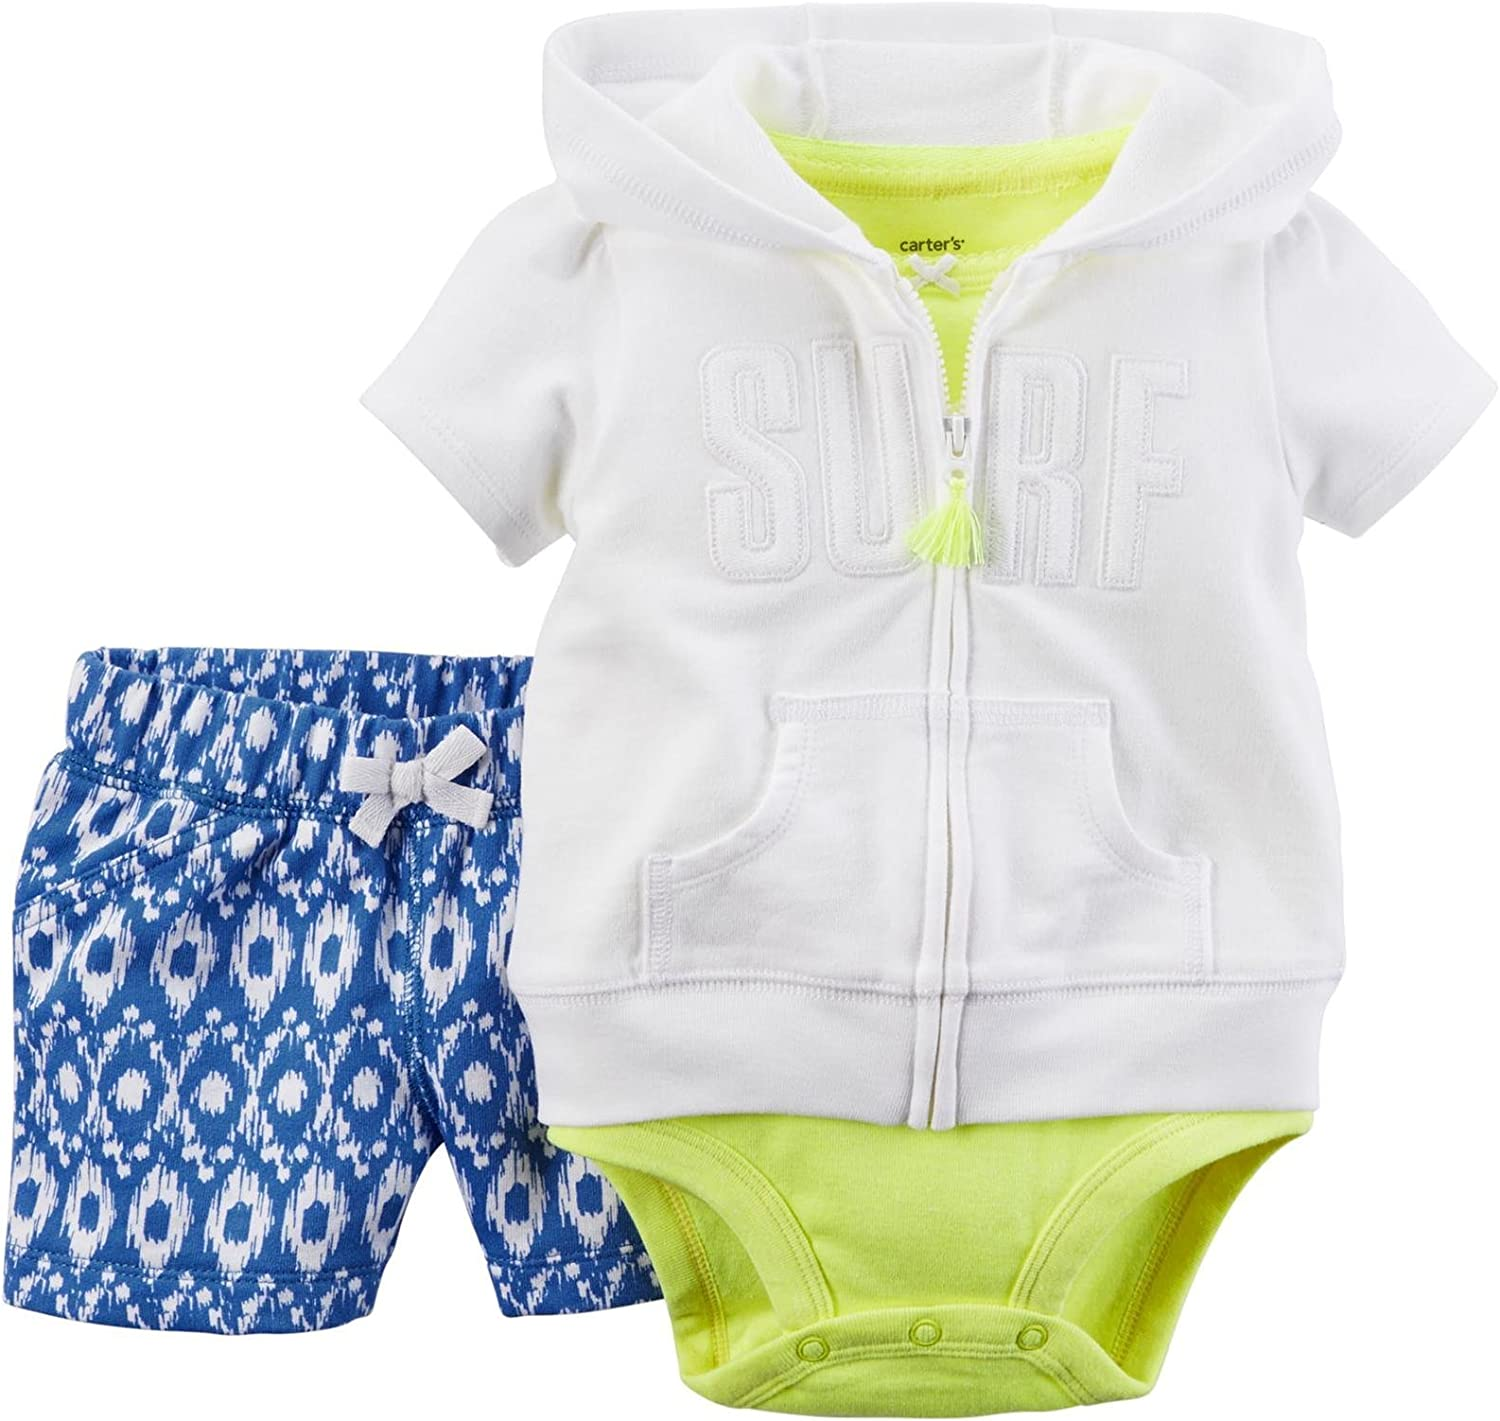 Carters 3 teilig Weste Body Shorts Baby M/ädchen Outfit Kleidung Girl Kurze Hose Sommer Strand